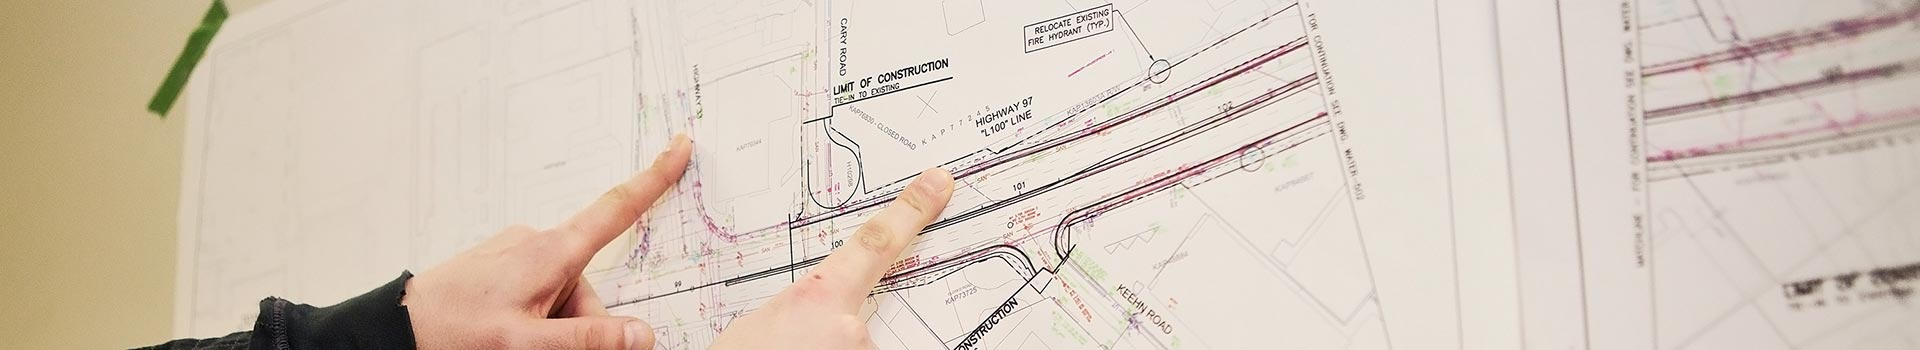 Closeup of a construction map